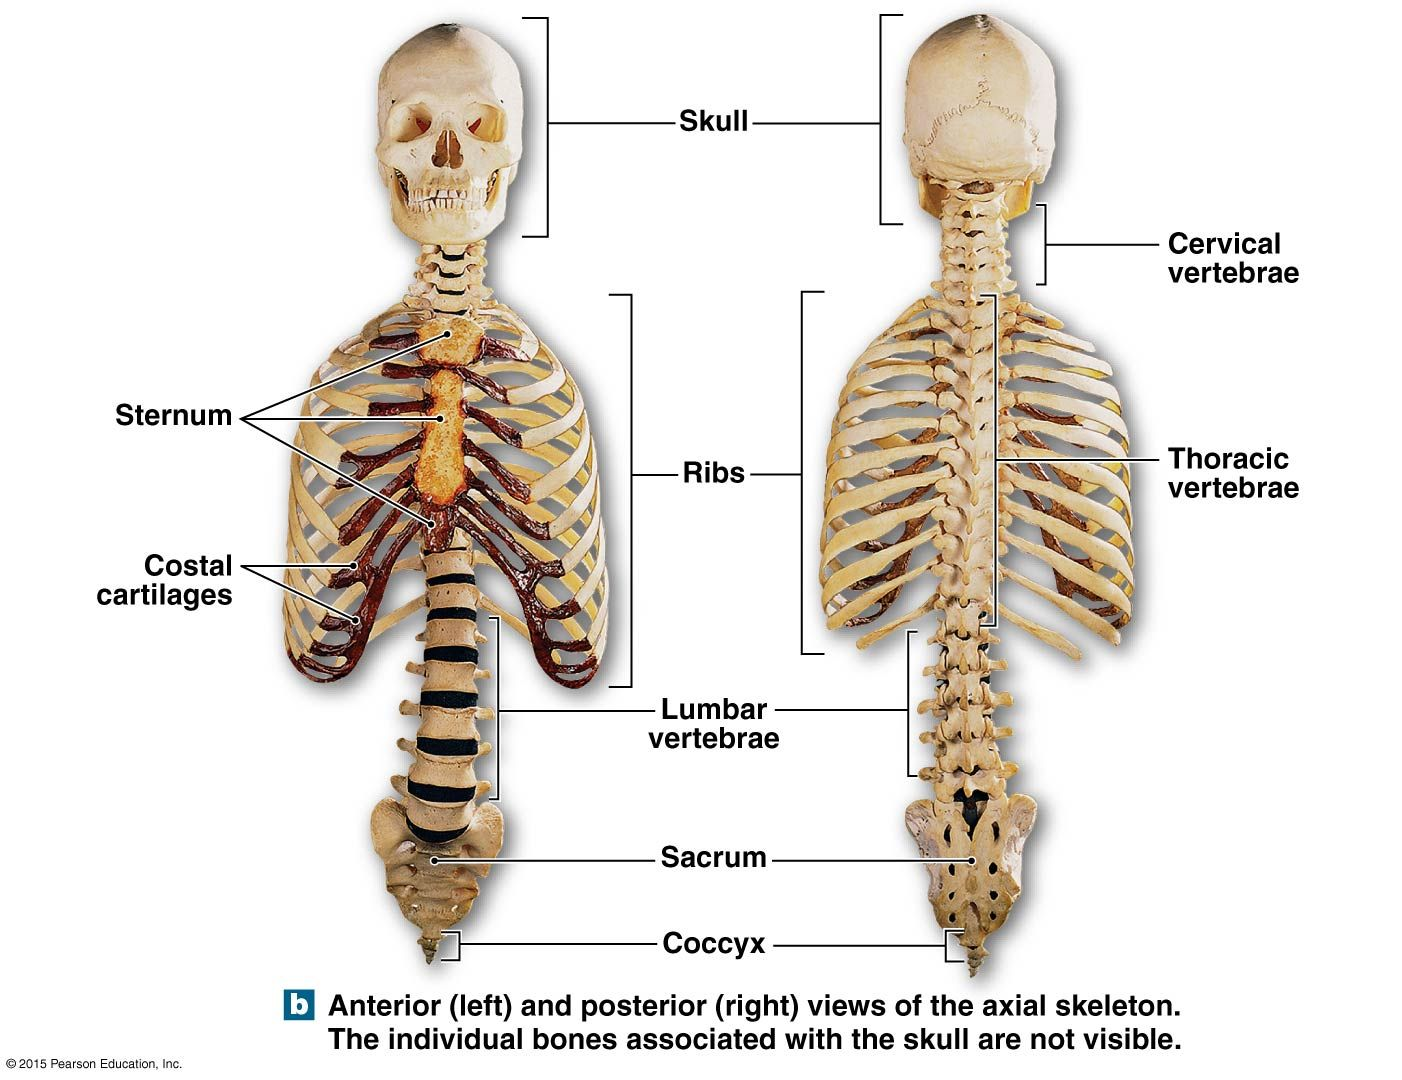 anterioir and posterioir views of the axial skeleton | anatomy and